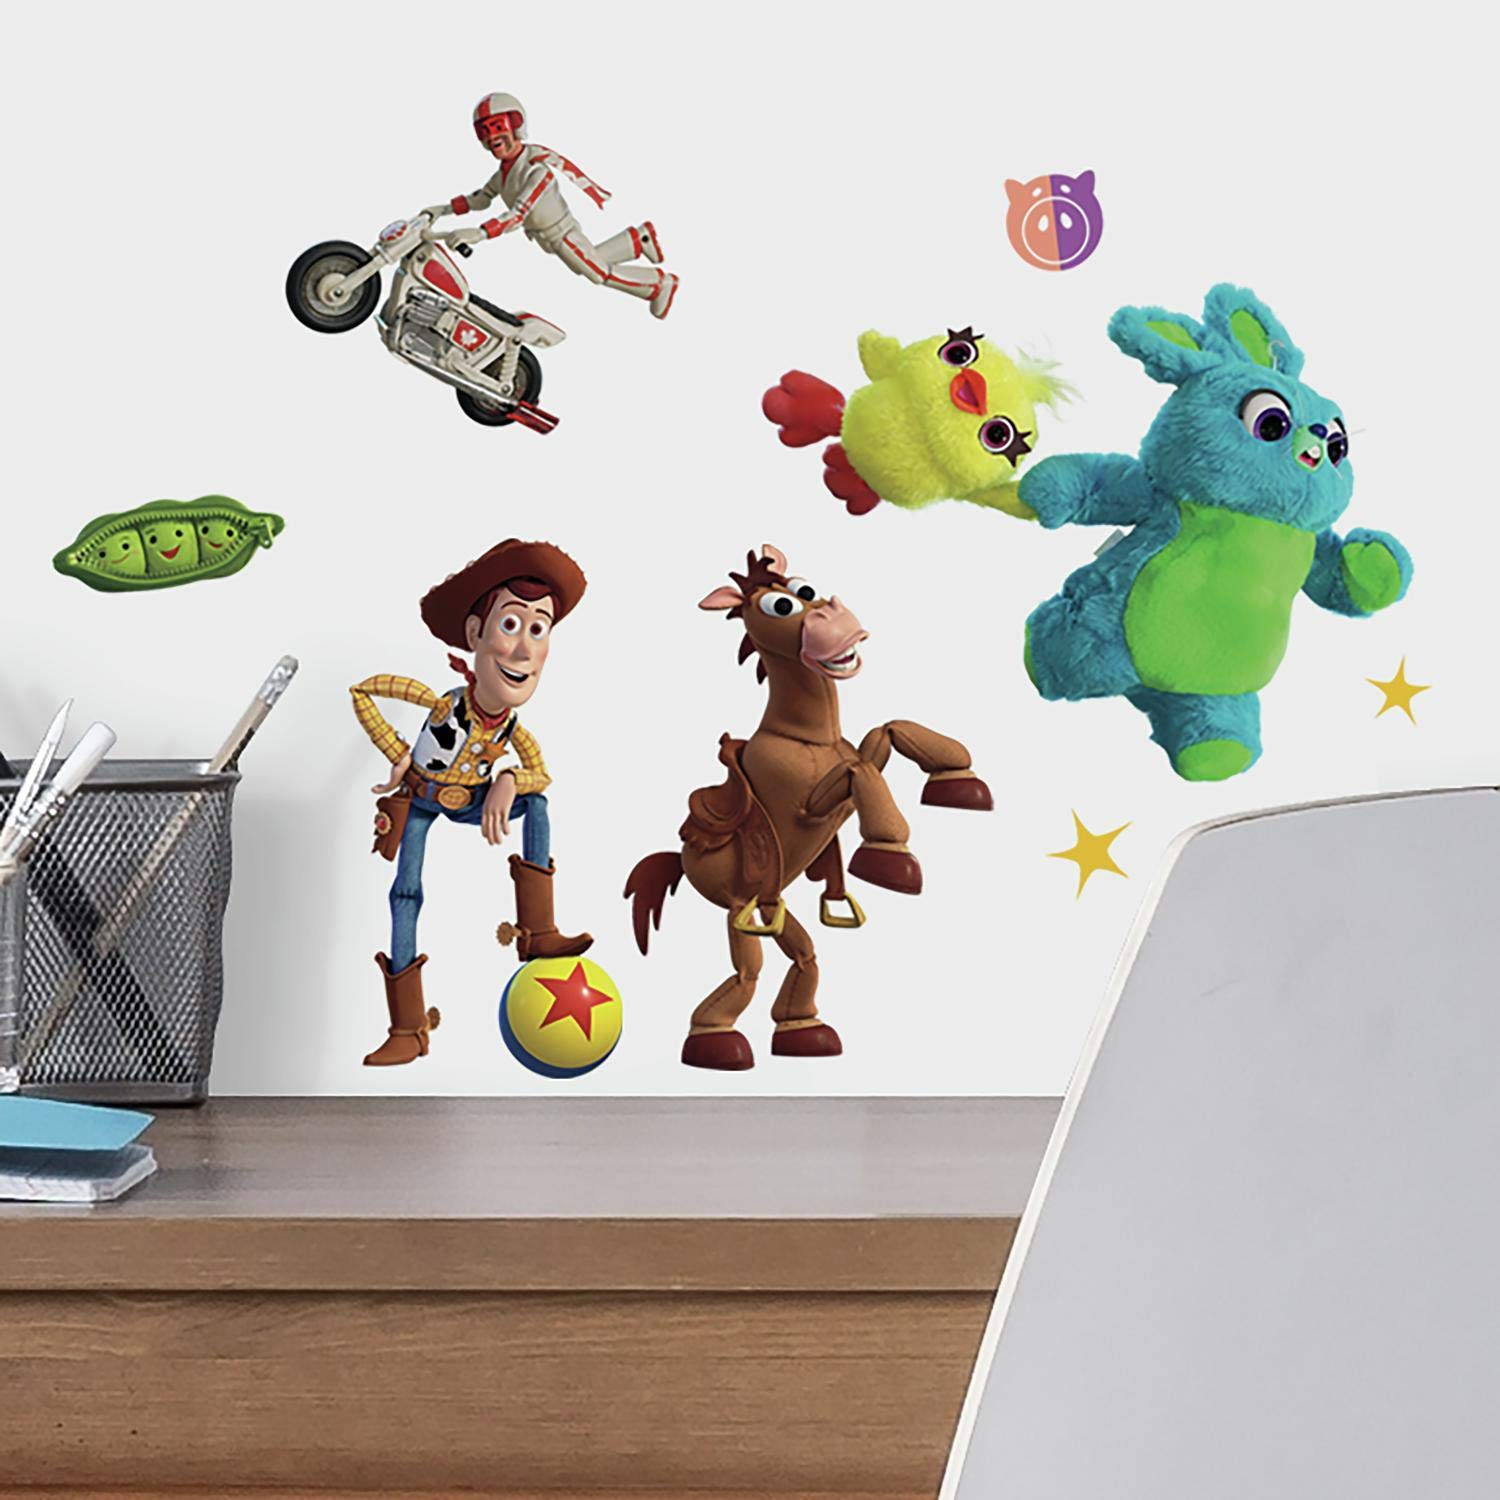 Removable Personalized Wall Sticker Toy Story 3D Wall Decal